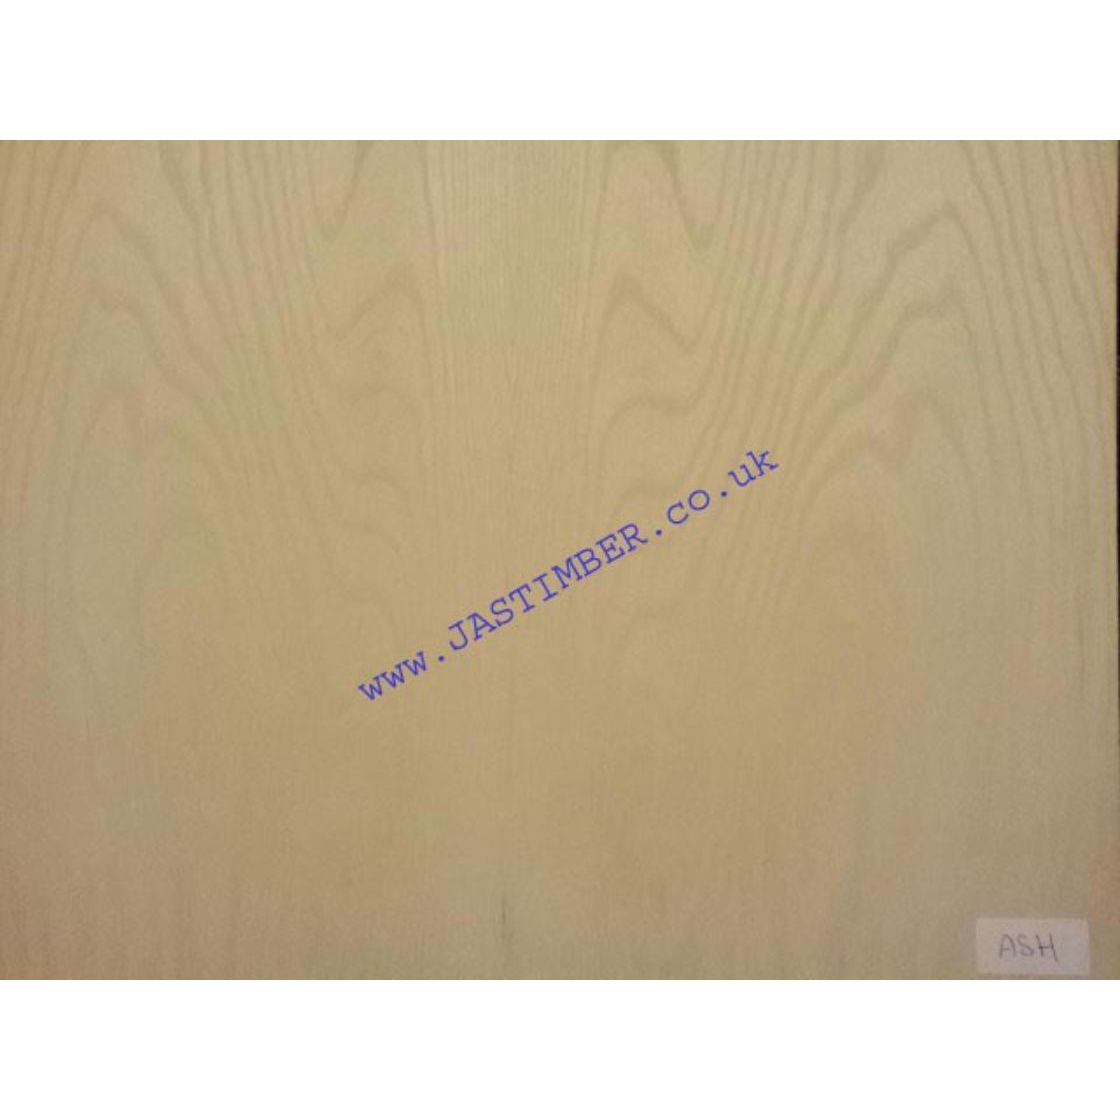 4mm Ash Plywood - White-Ash-1-Side - 8x4 Board - 2440x1220x3.6mm)